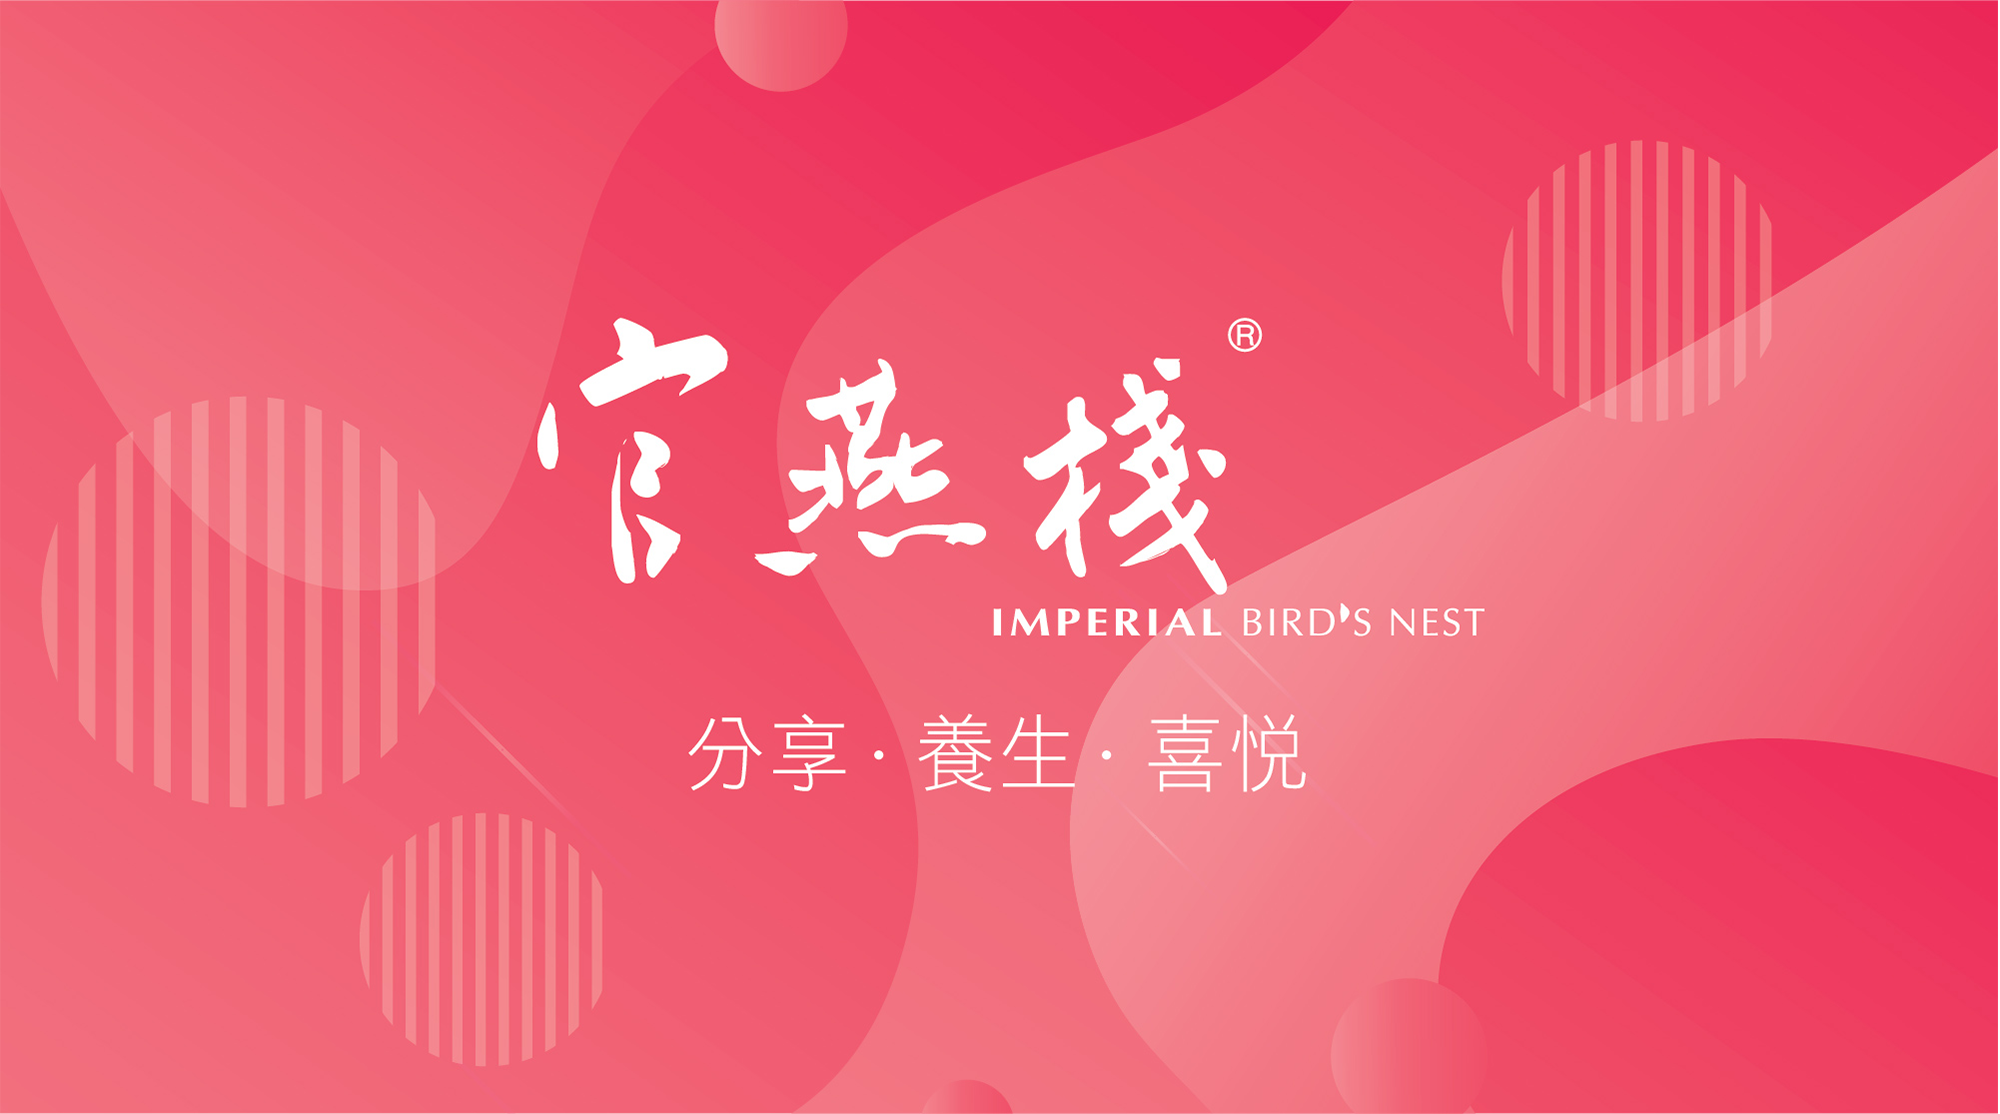 Imperial Bird's Nest Company Limited